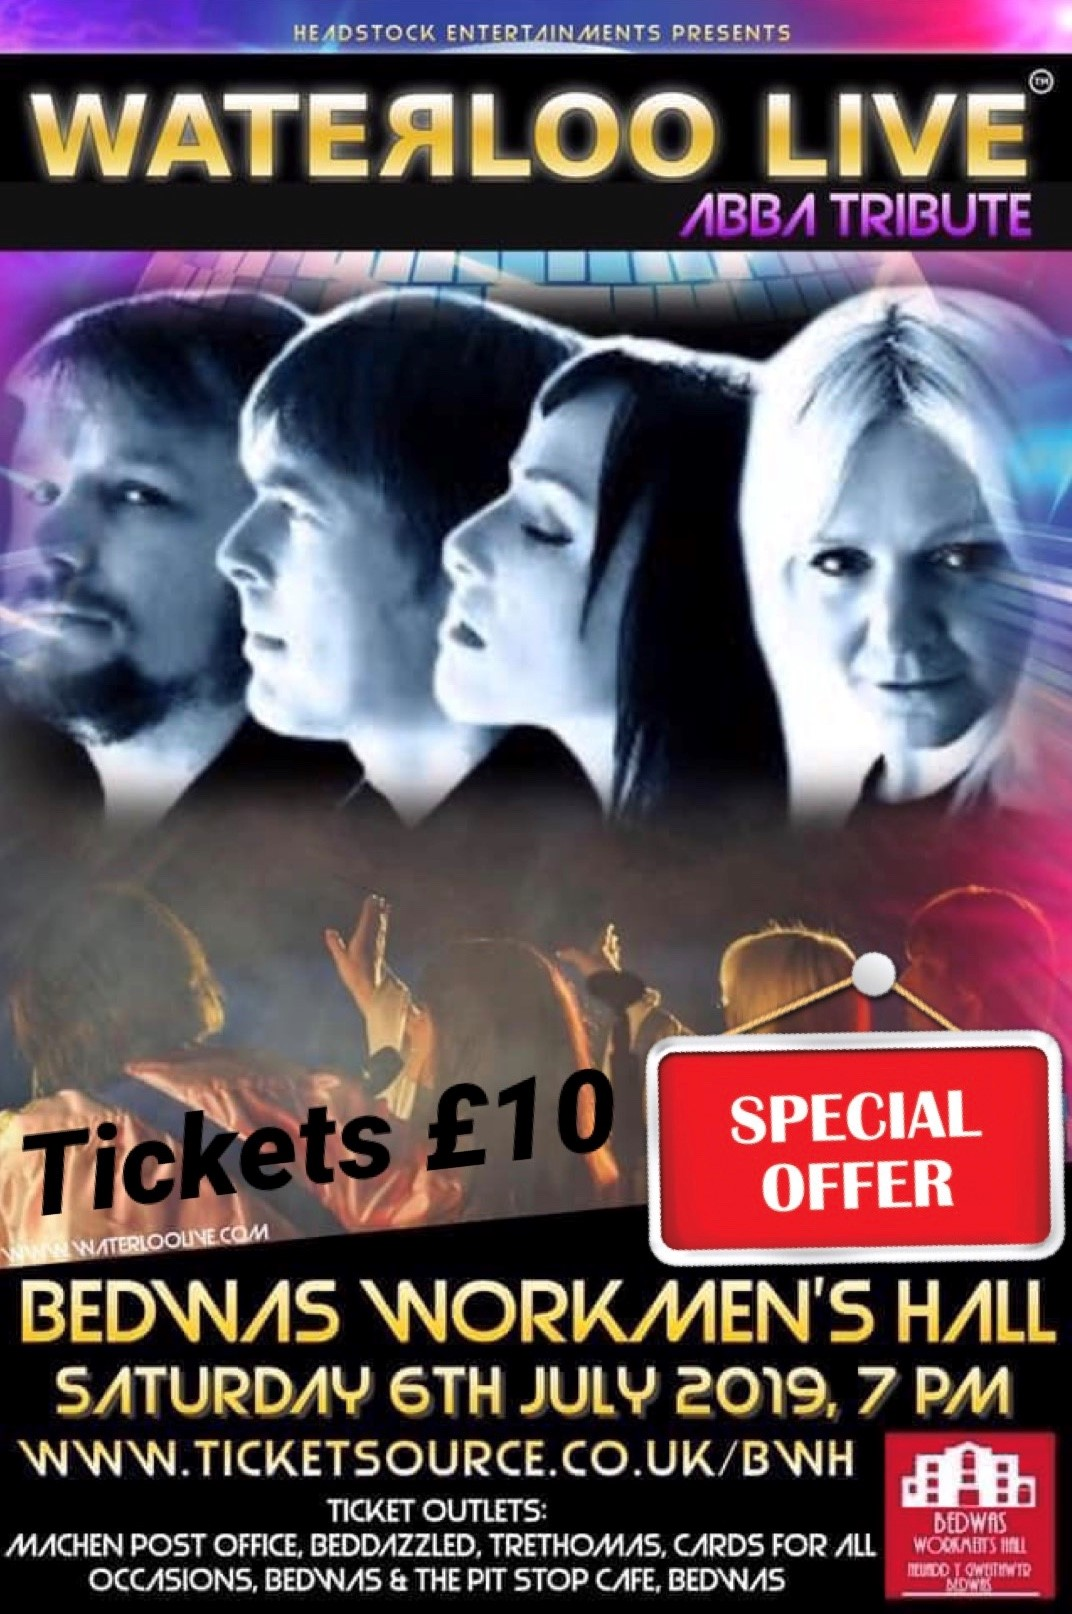 No Disrespect at Bedwas Workmen's Hall